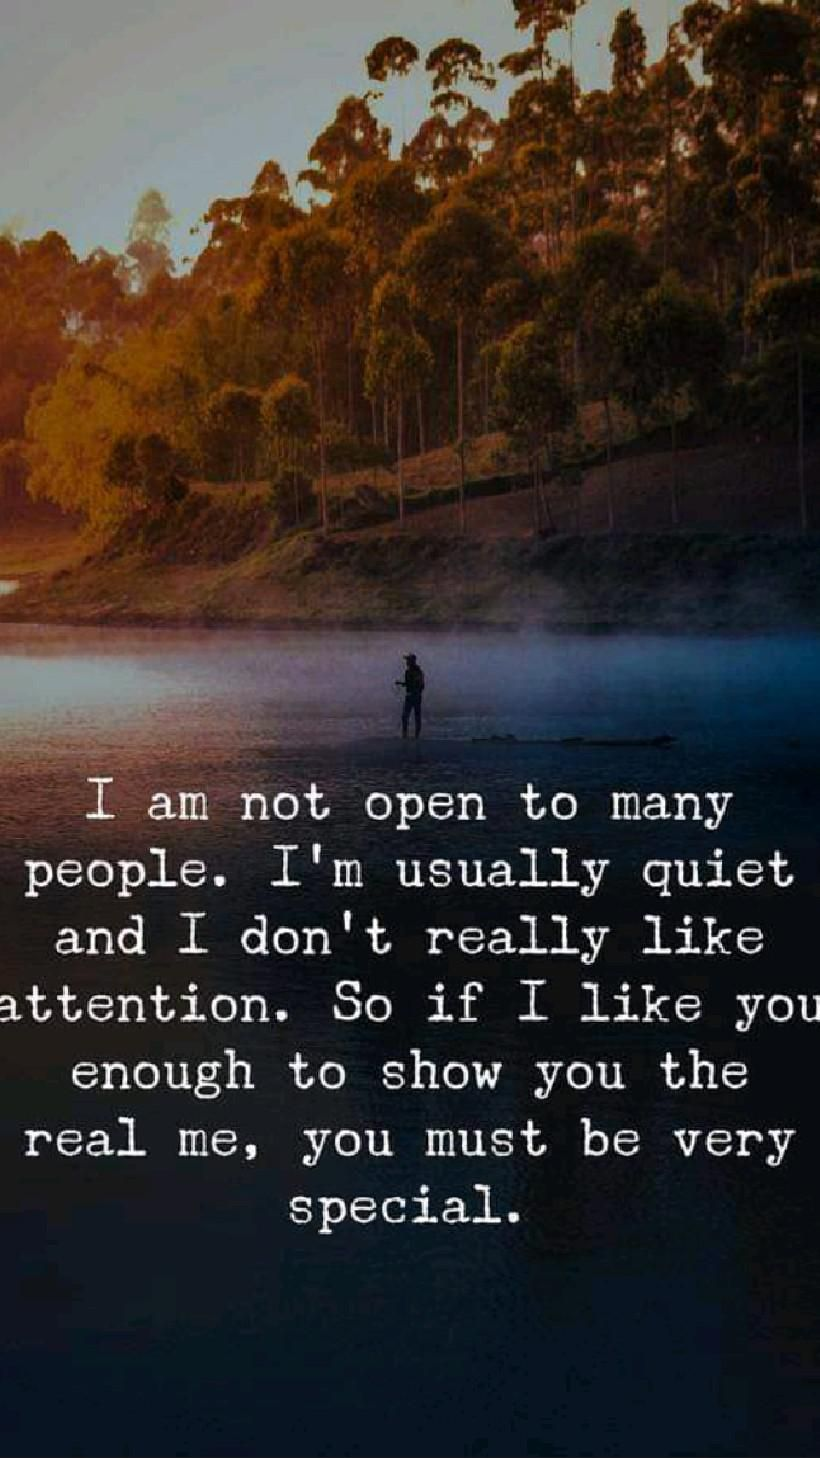 I am not open to many people..